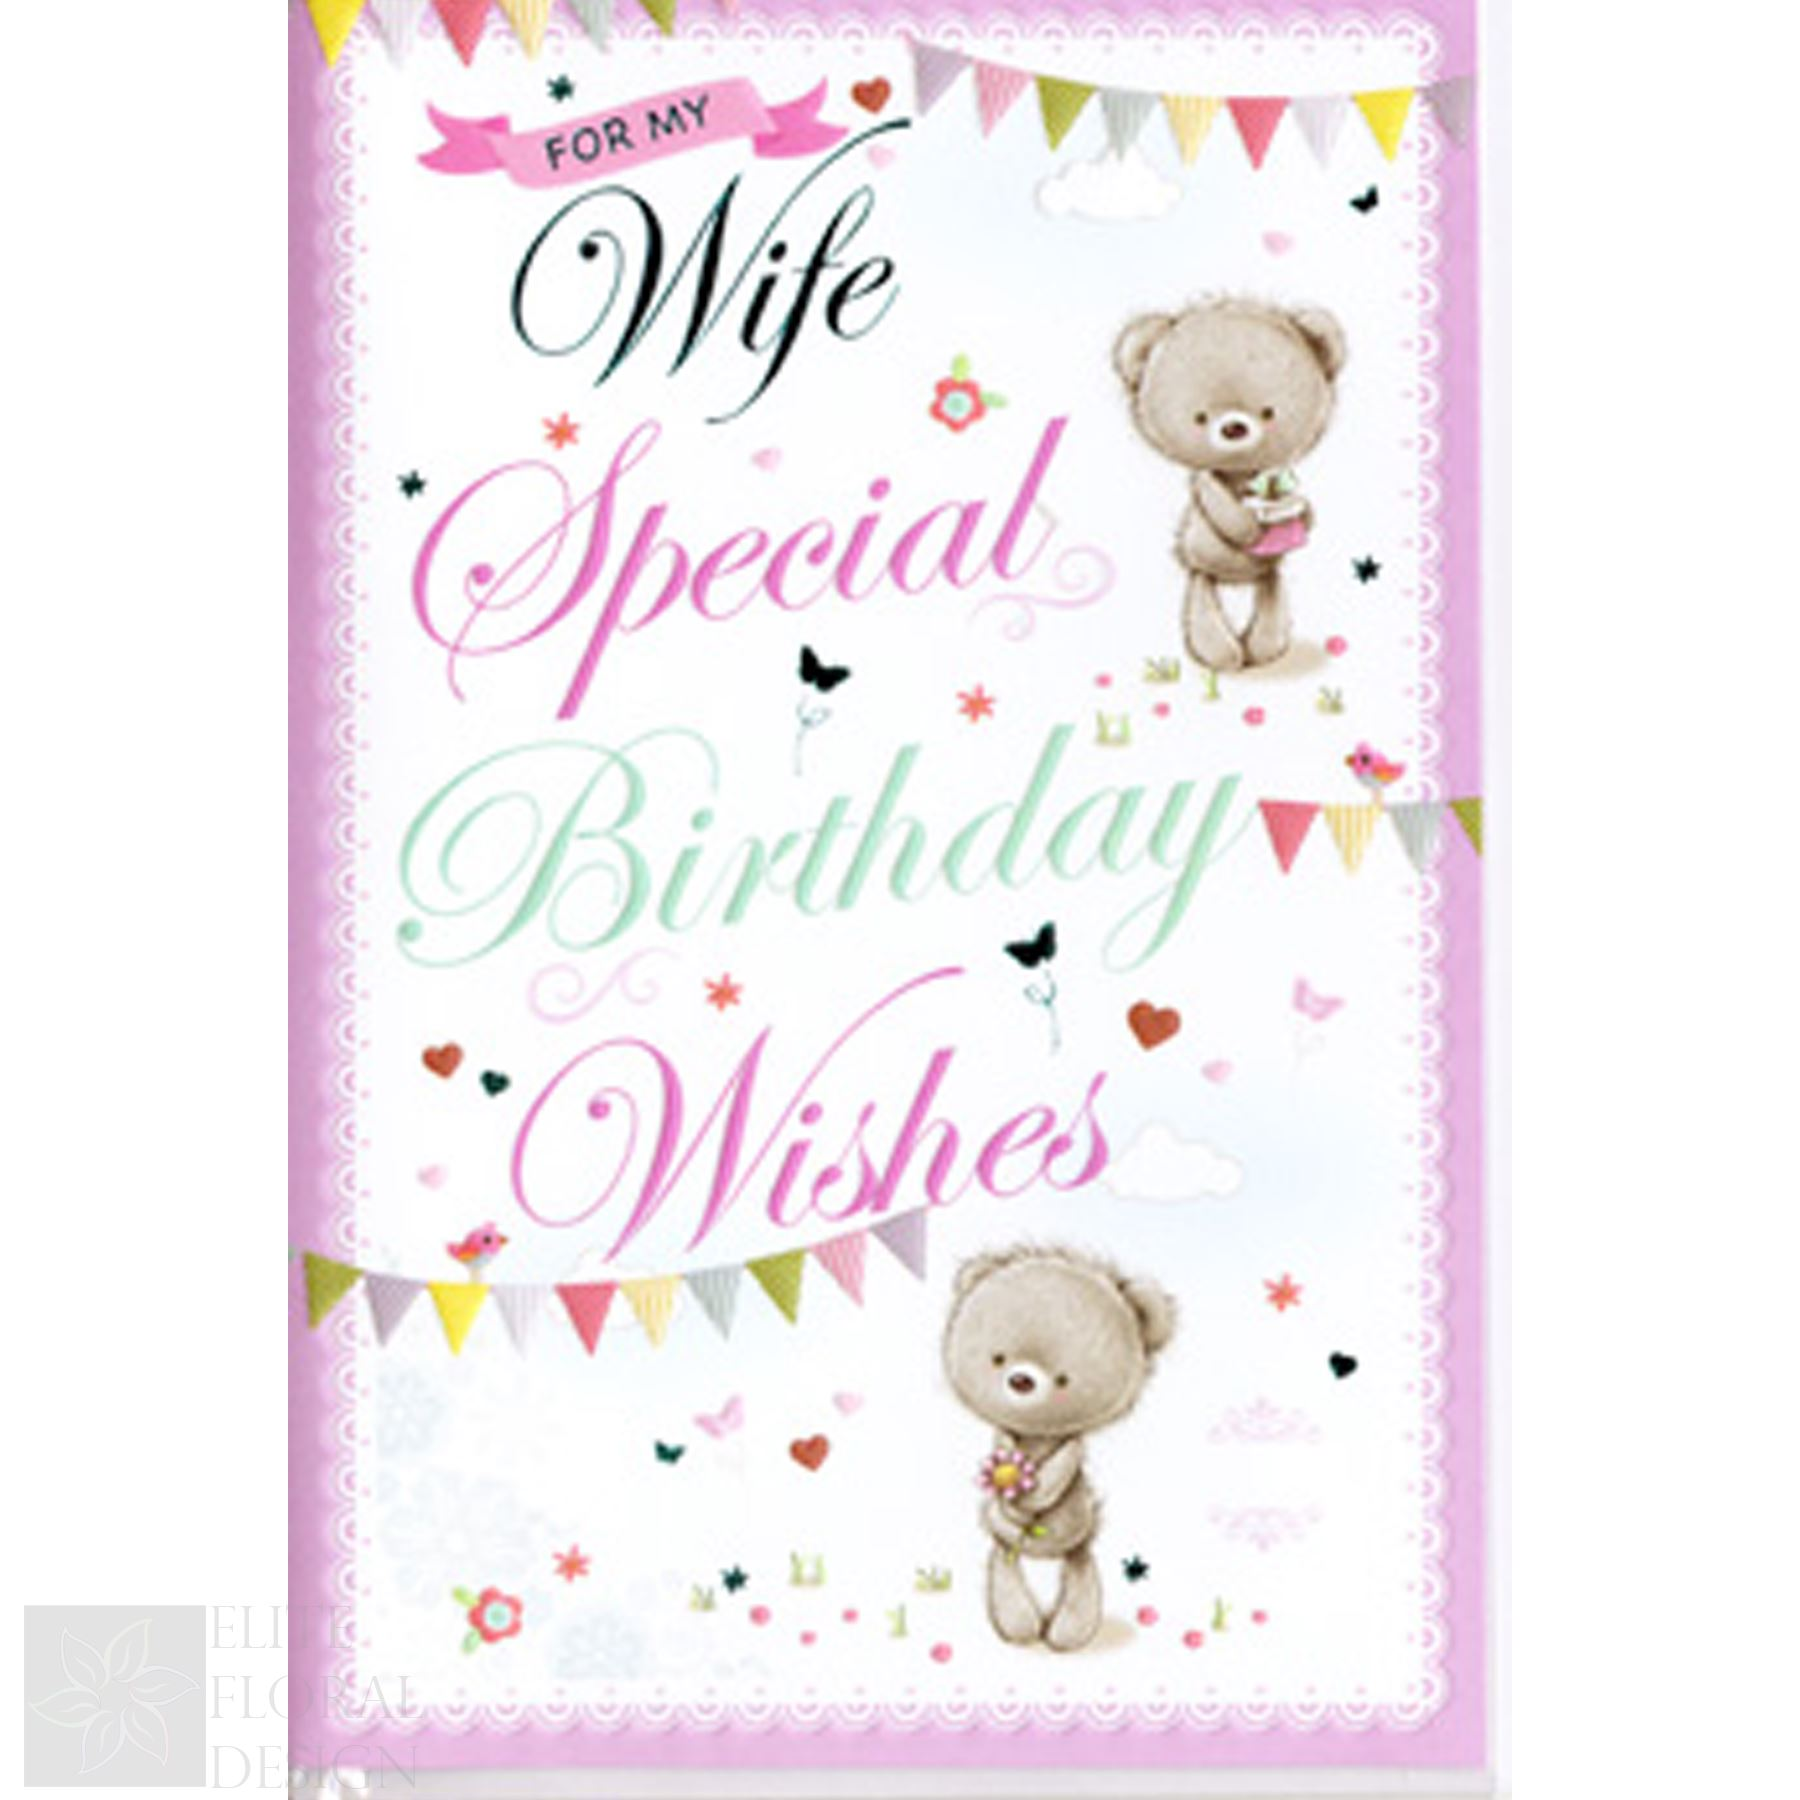 Details About Happy Birthday Greeting Card For My Wife Special Wishes Two Teddies